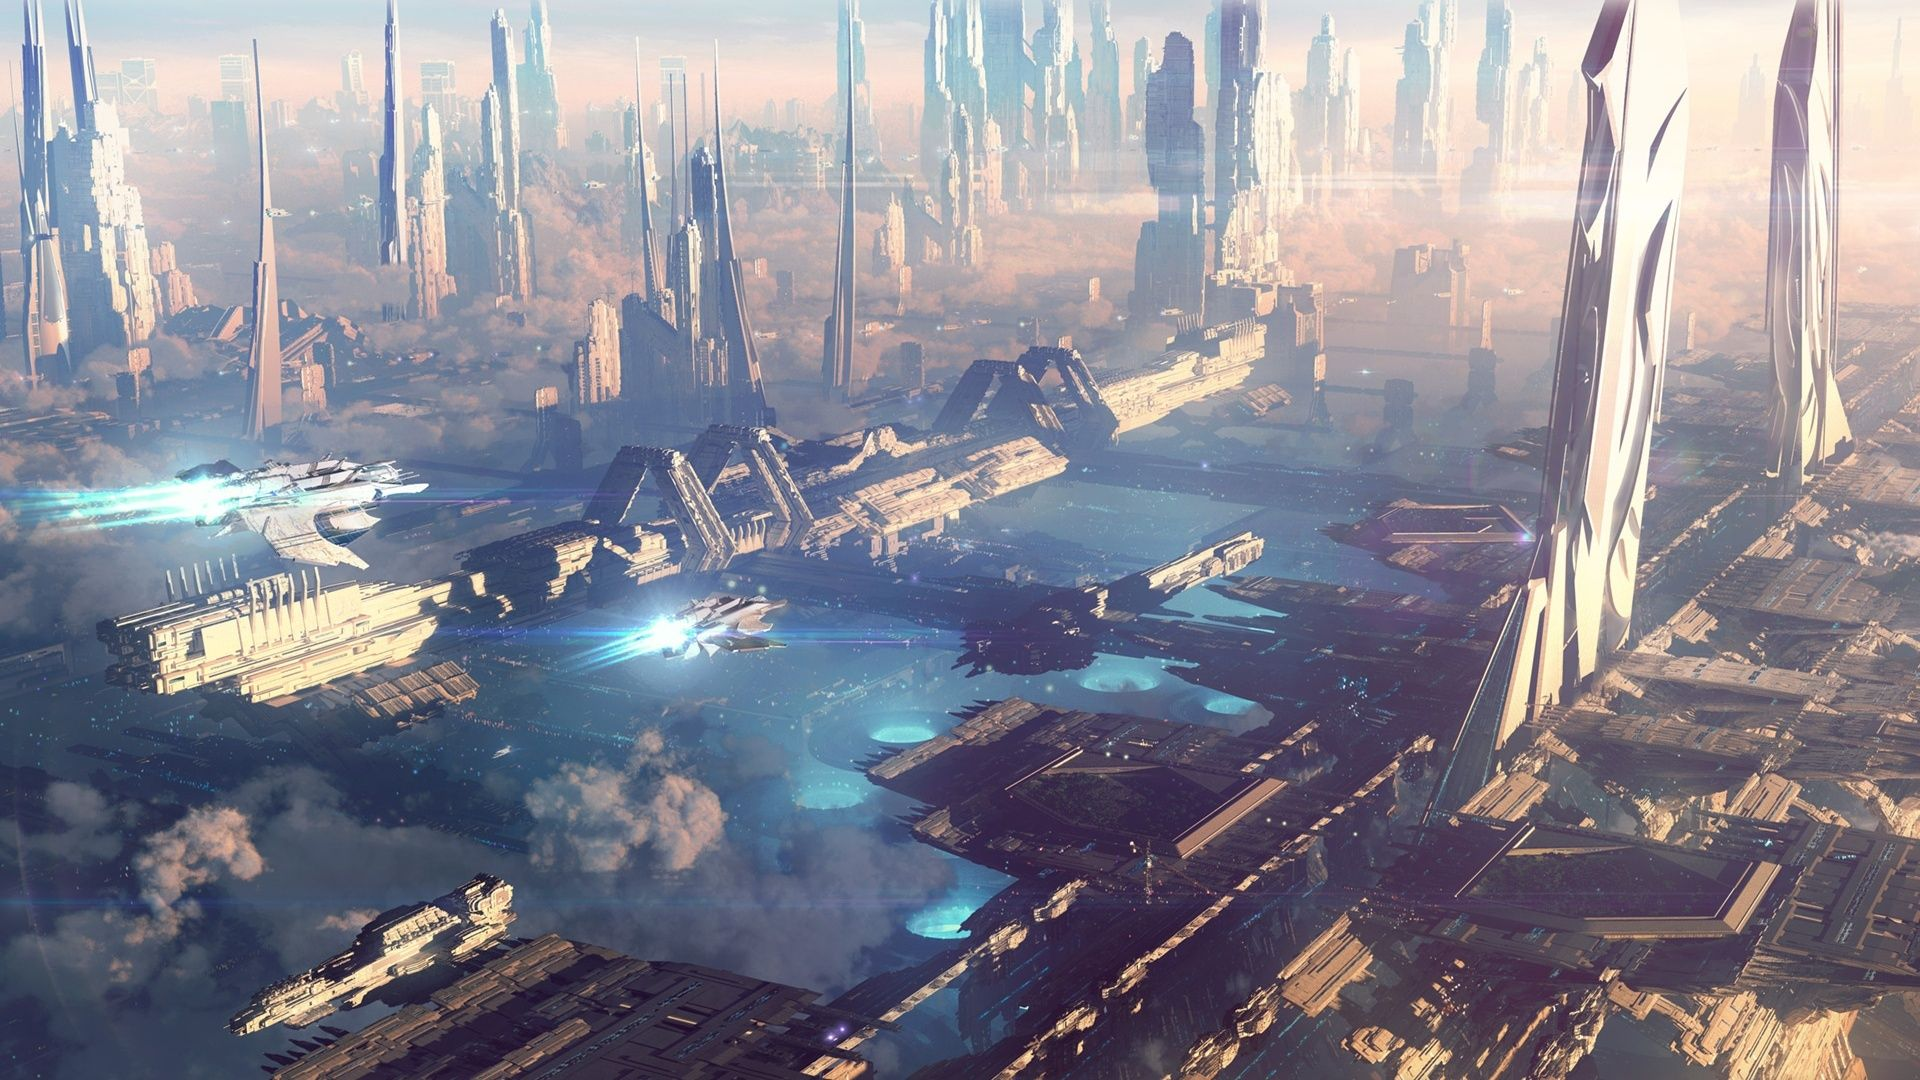 Future Space City Wallpapers Top Free Future Space City Backgrounds Wallpaperaccess